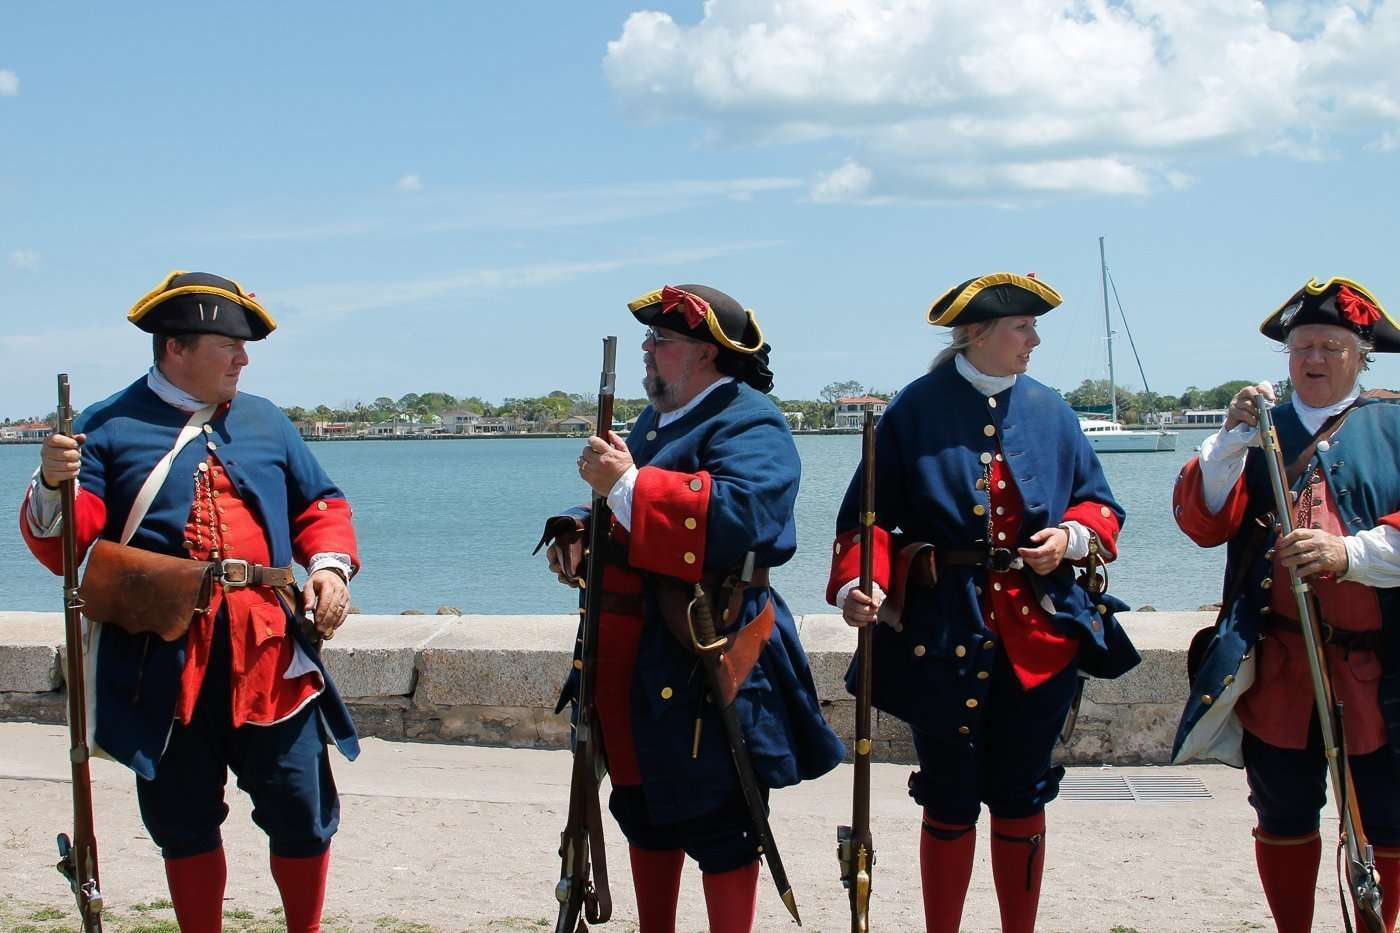 soldiers demonstrating musket shootings in a historical reenactment as part of St. Augustine's living history